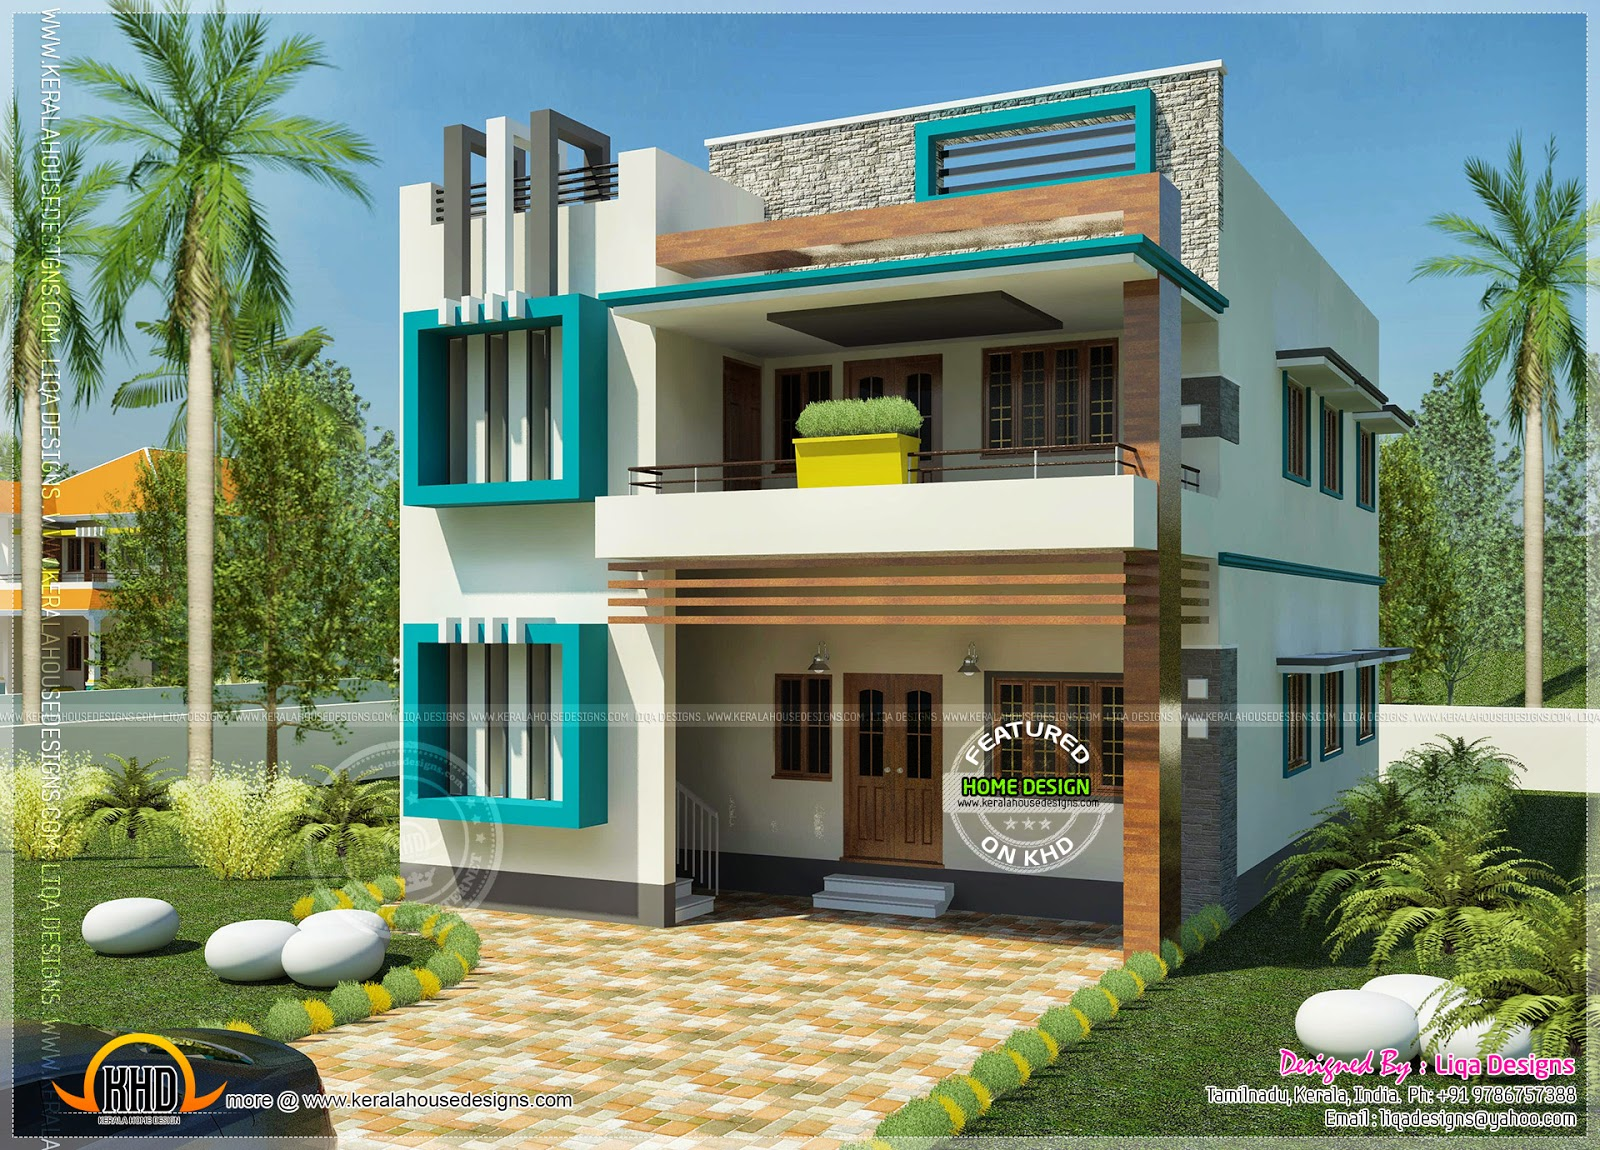 South indian contemporary home kerala home design and for Indian small house designs photos